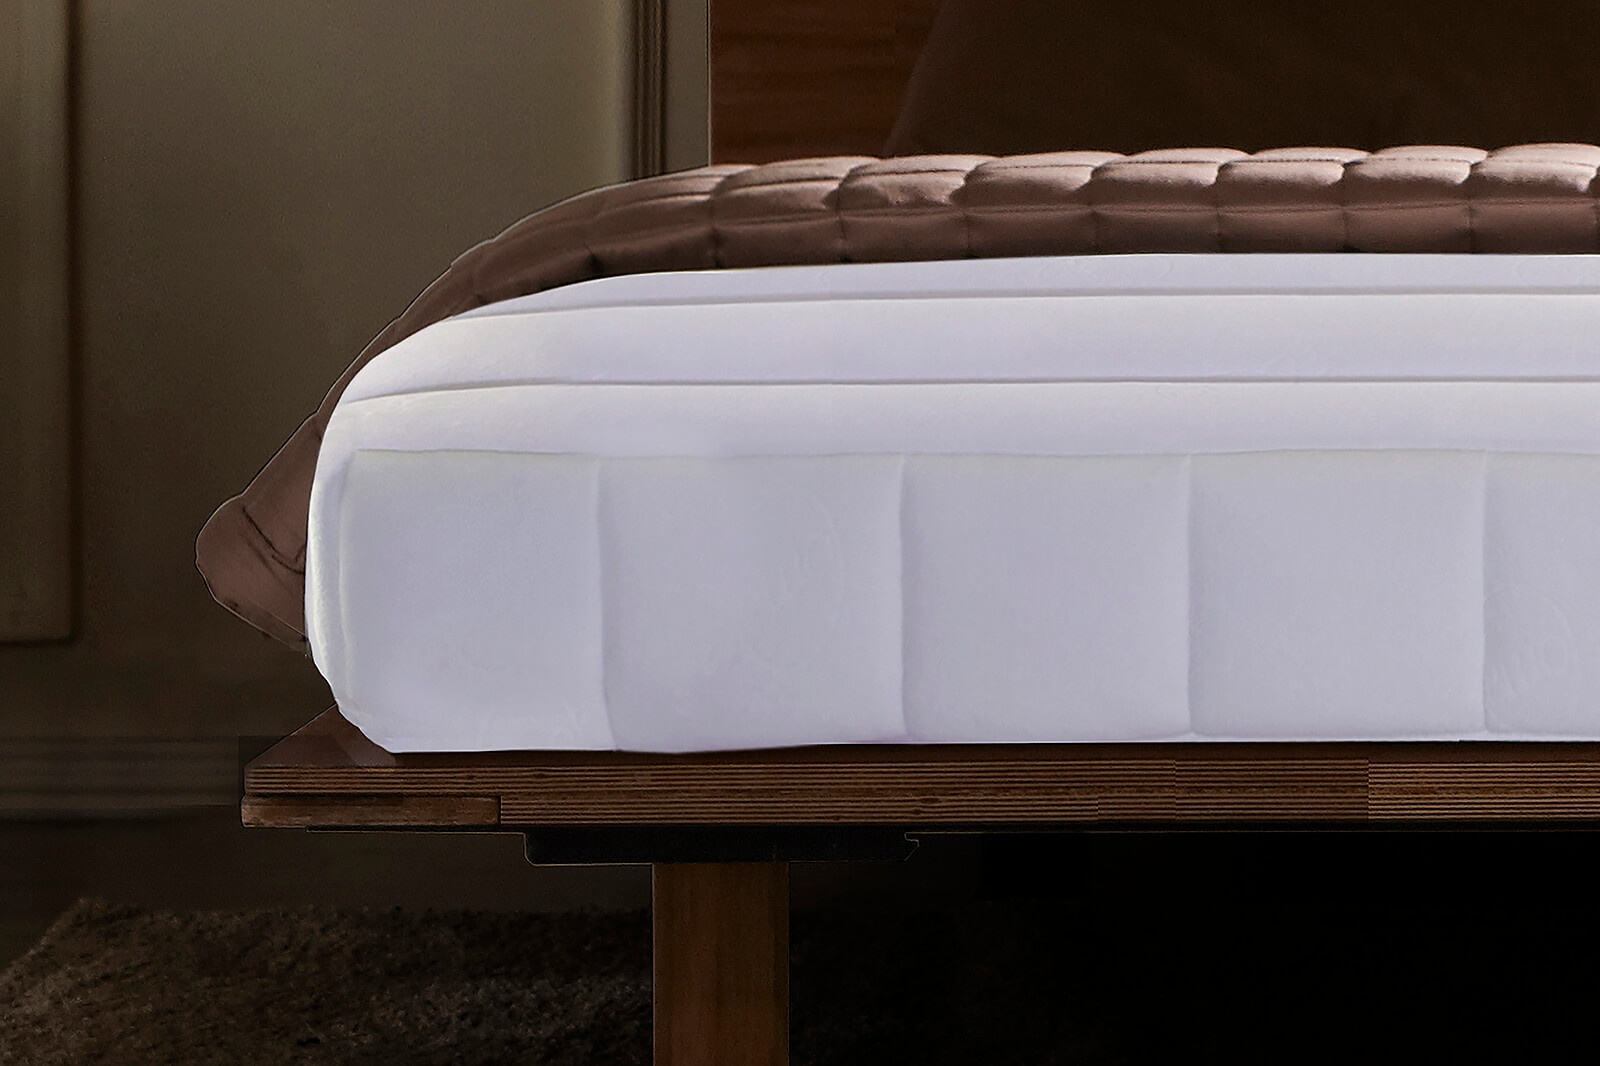 omazz-mattress-ferriston-3